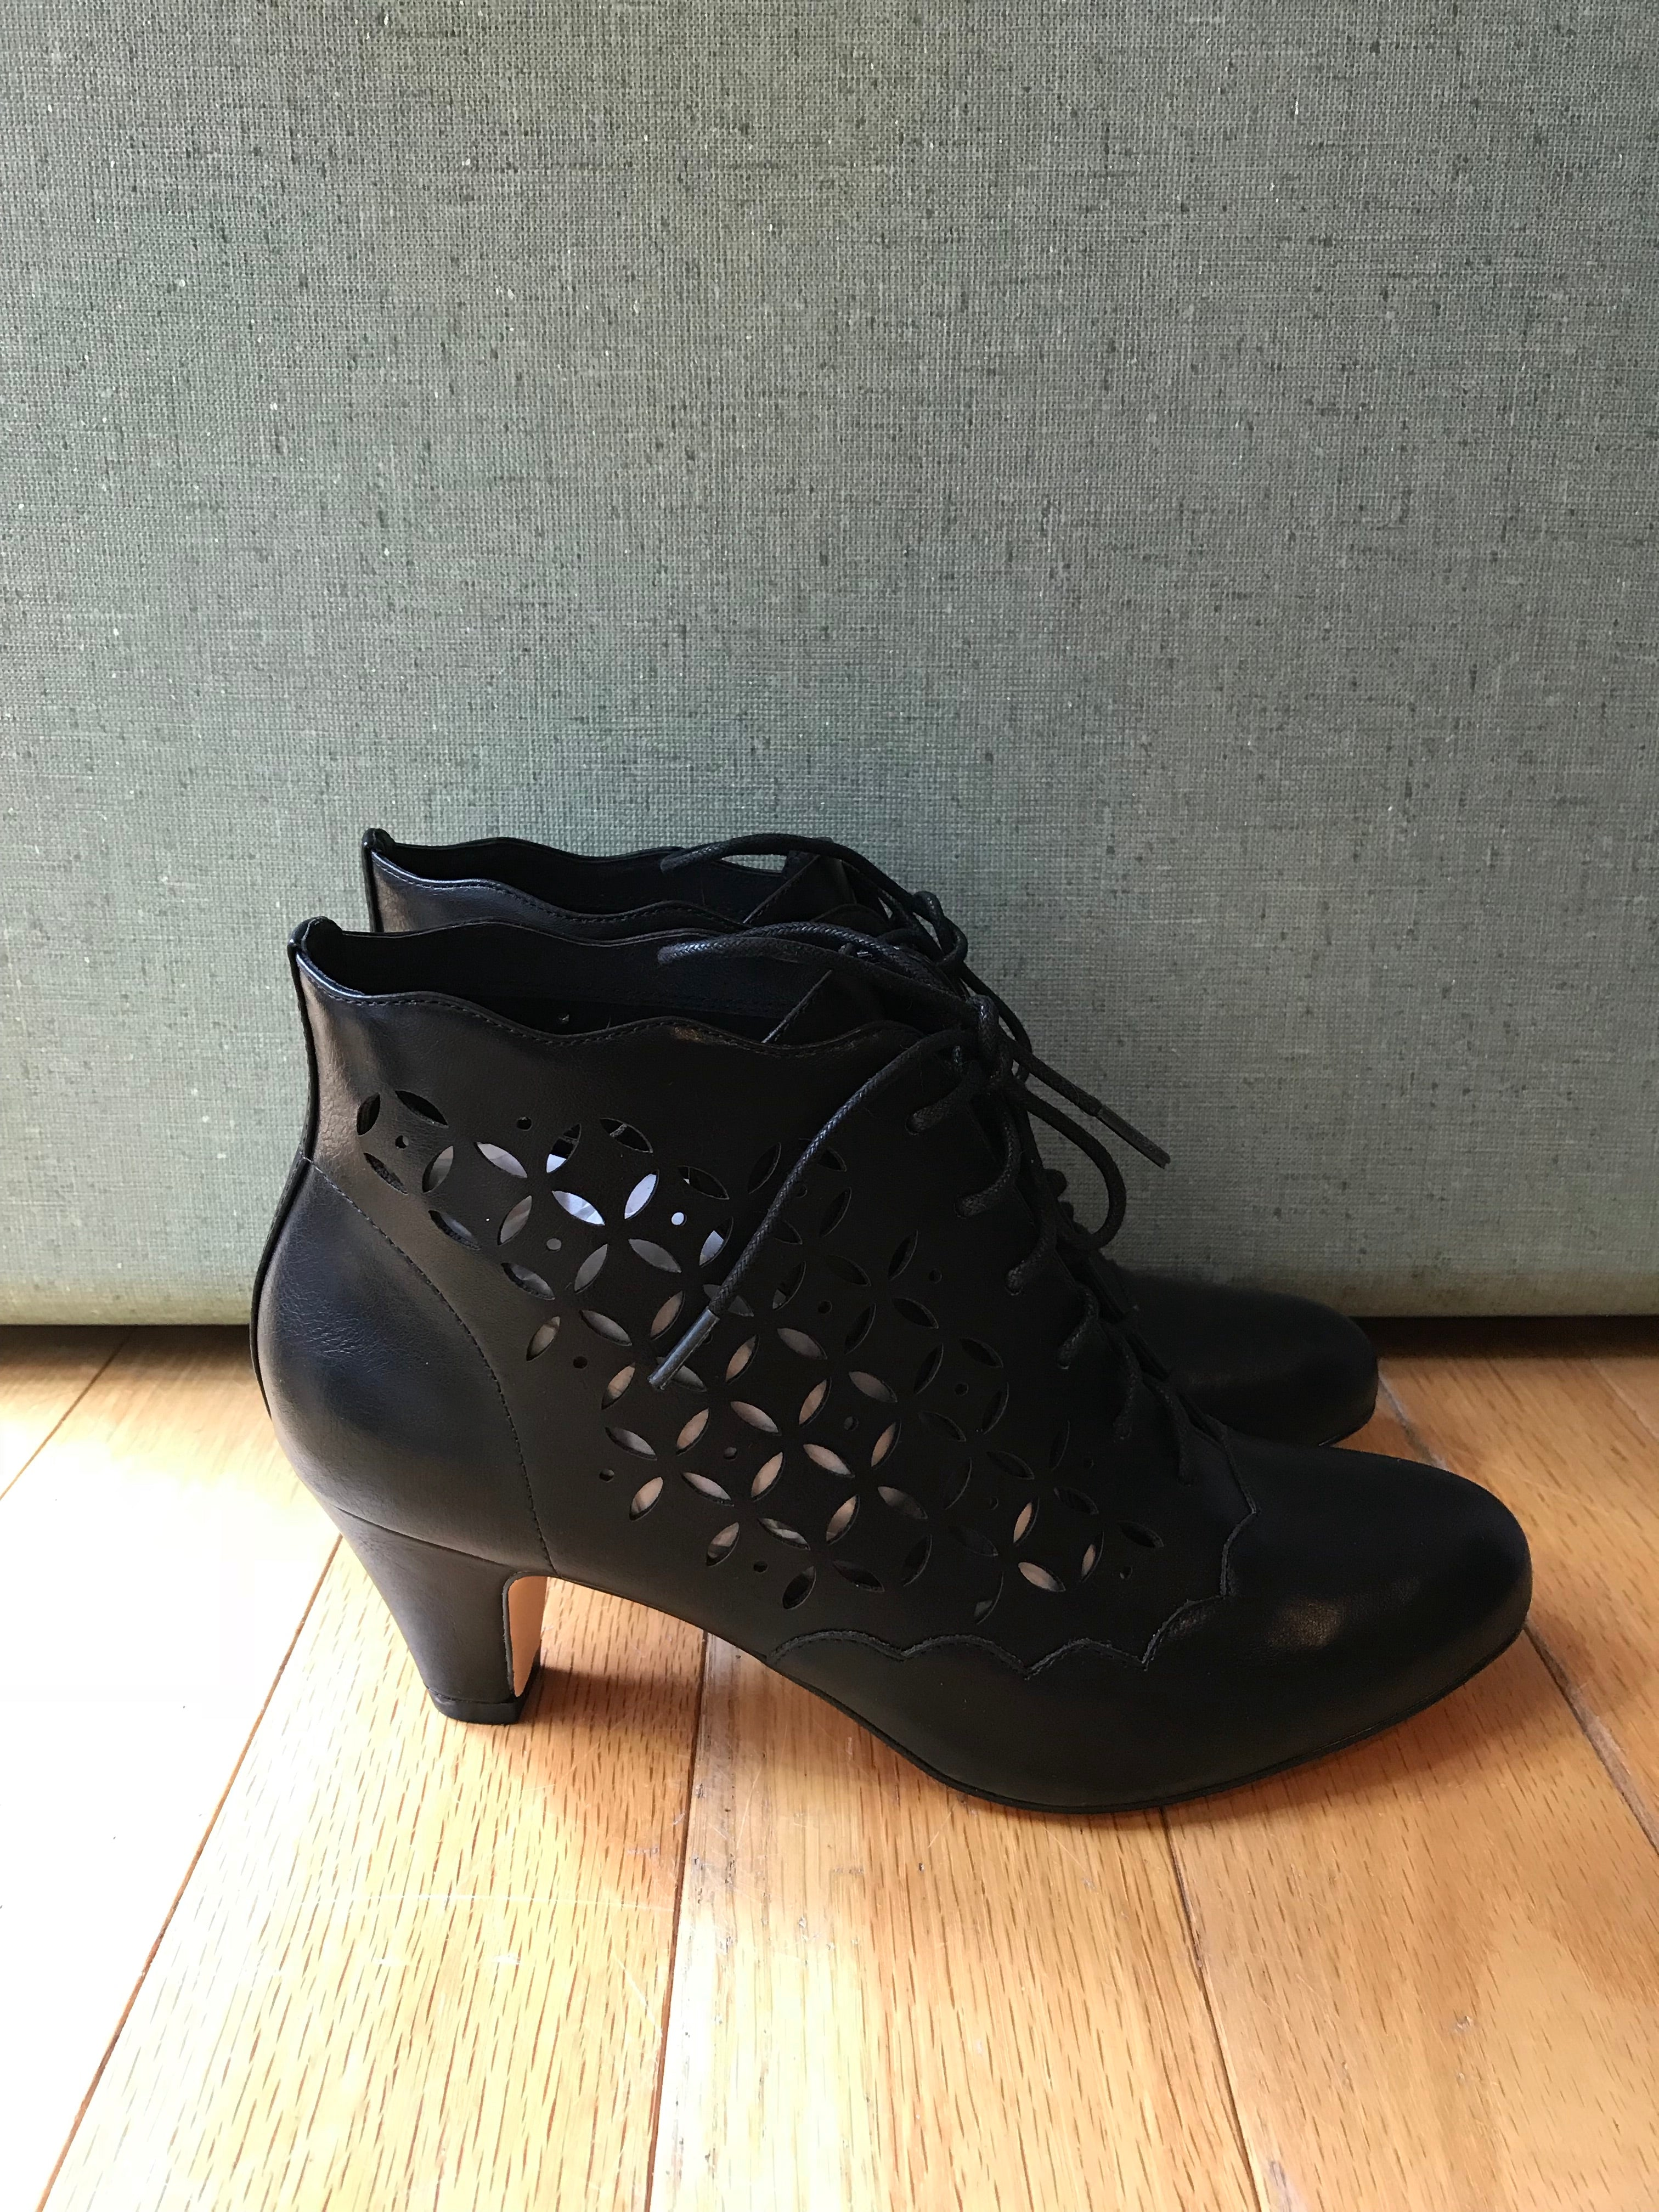 Illusion Bootie in Black by Chelsea Crew